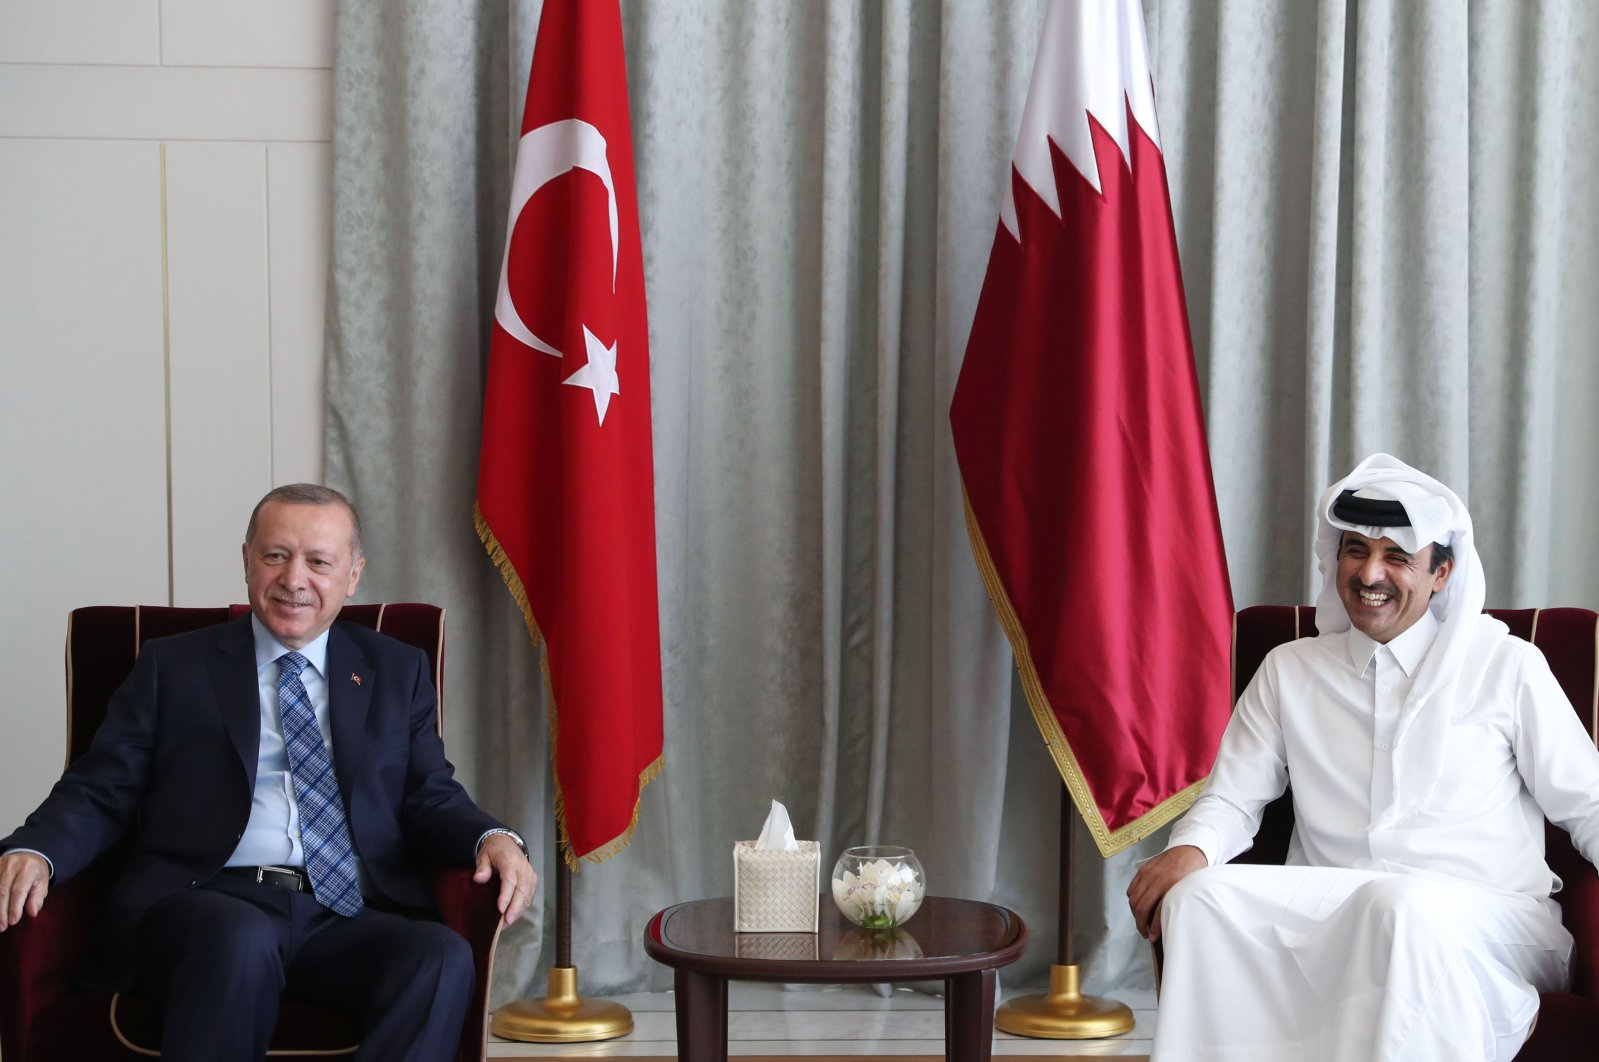 This handout picture provided by Qatar's Government Communications Office (GCO) on July 2, 2020 shows Emir Sheikh Tamim bin Hamad al-Thani (R) meeting with President Recep Tayyip Erdoğan in the capital Doha. (AFP Photo)